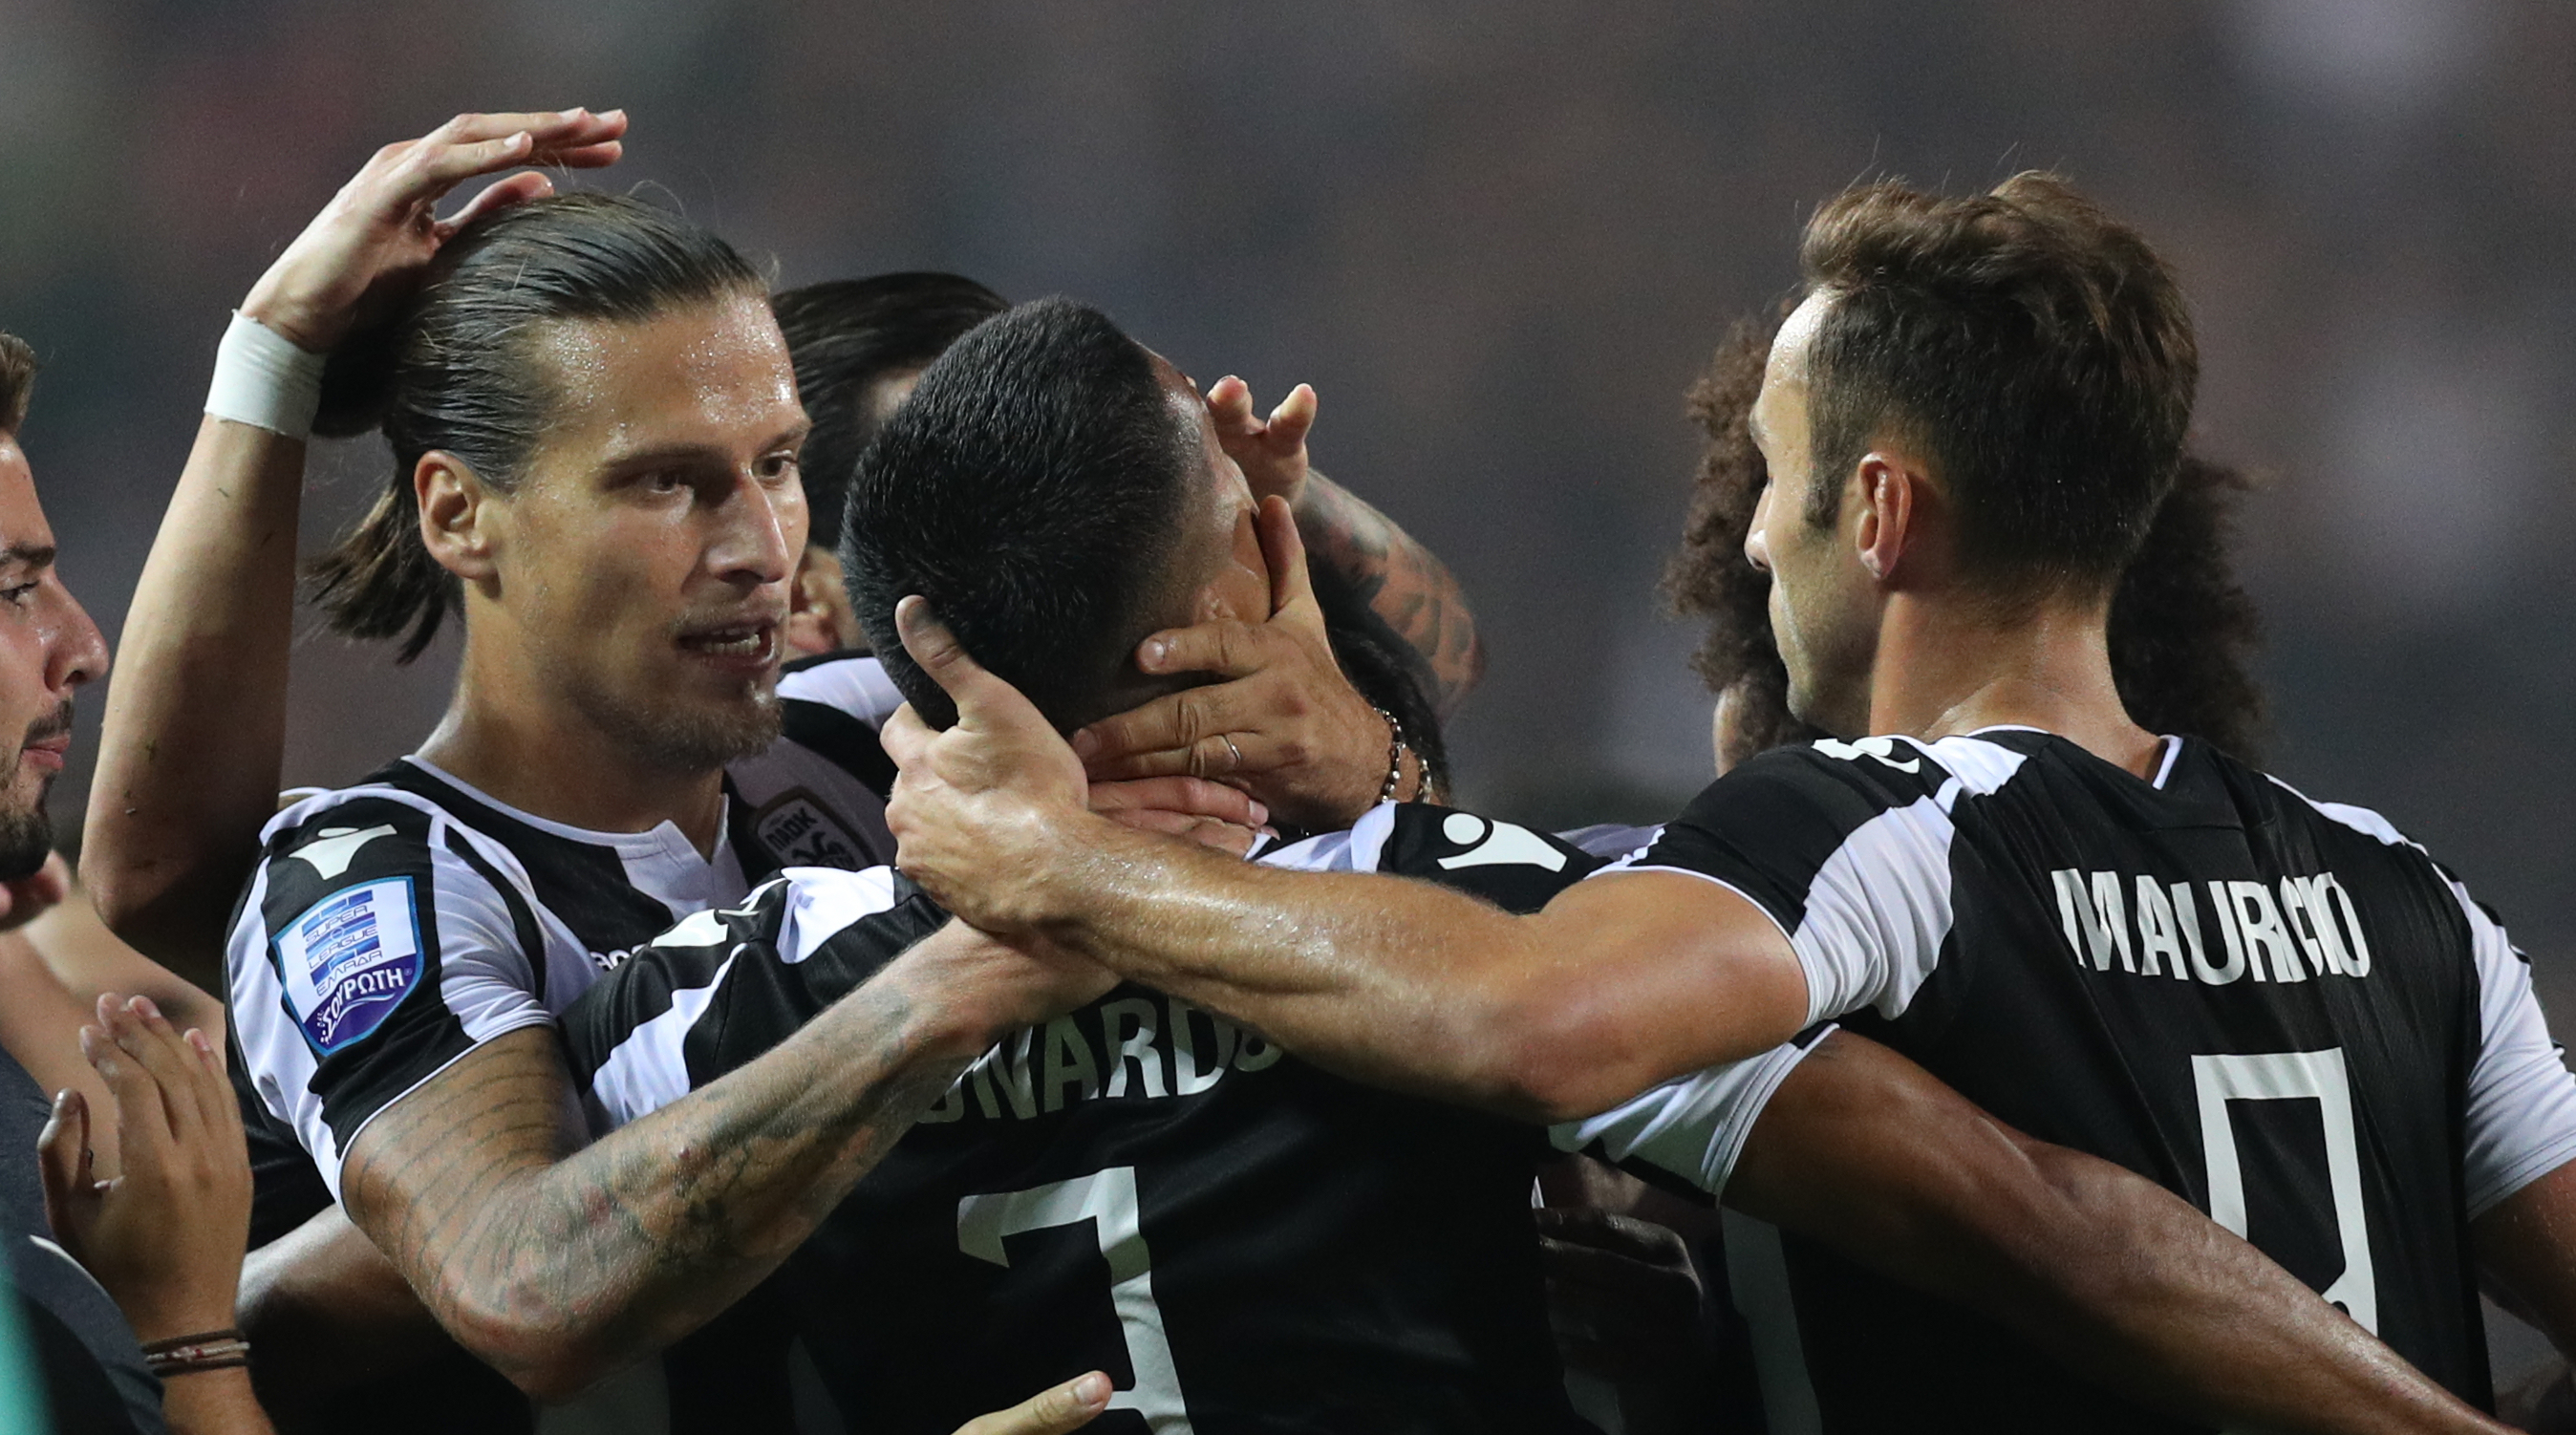 PAOK – AEK Athens: Highlights